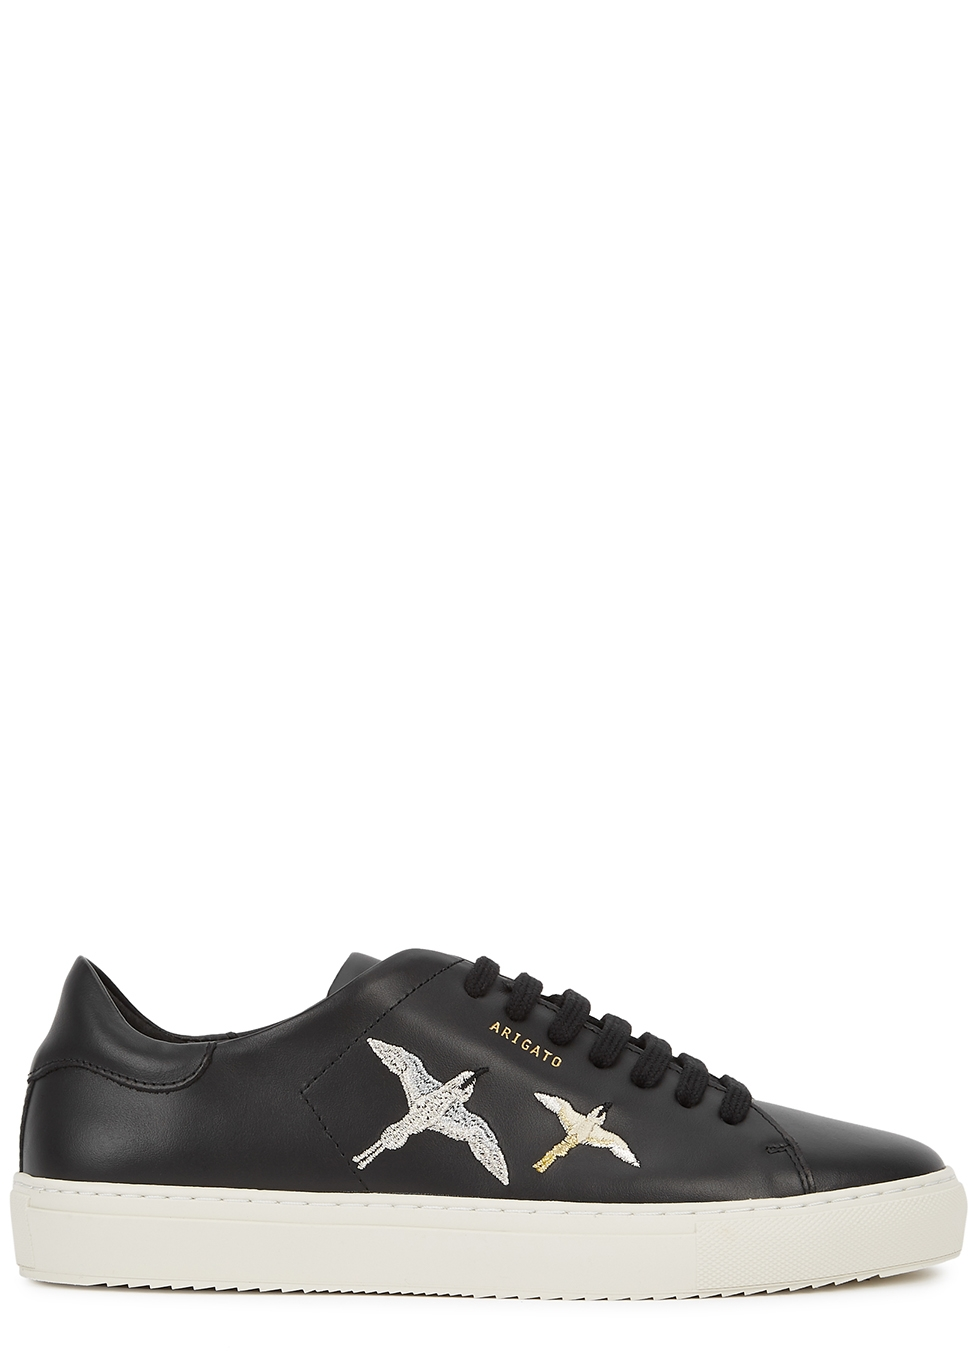 Clean 90 black embroidered leather sneakers